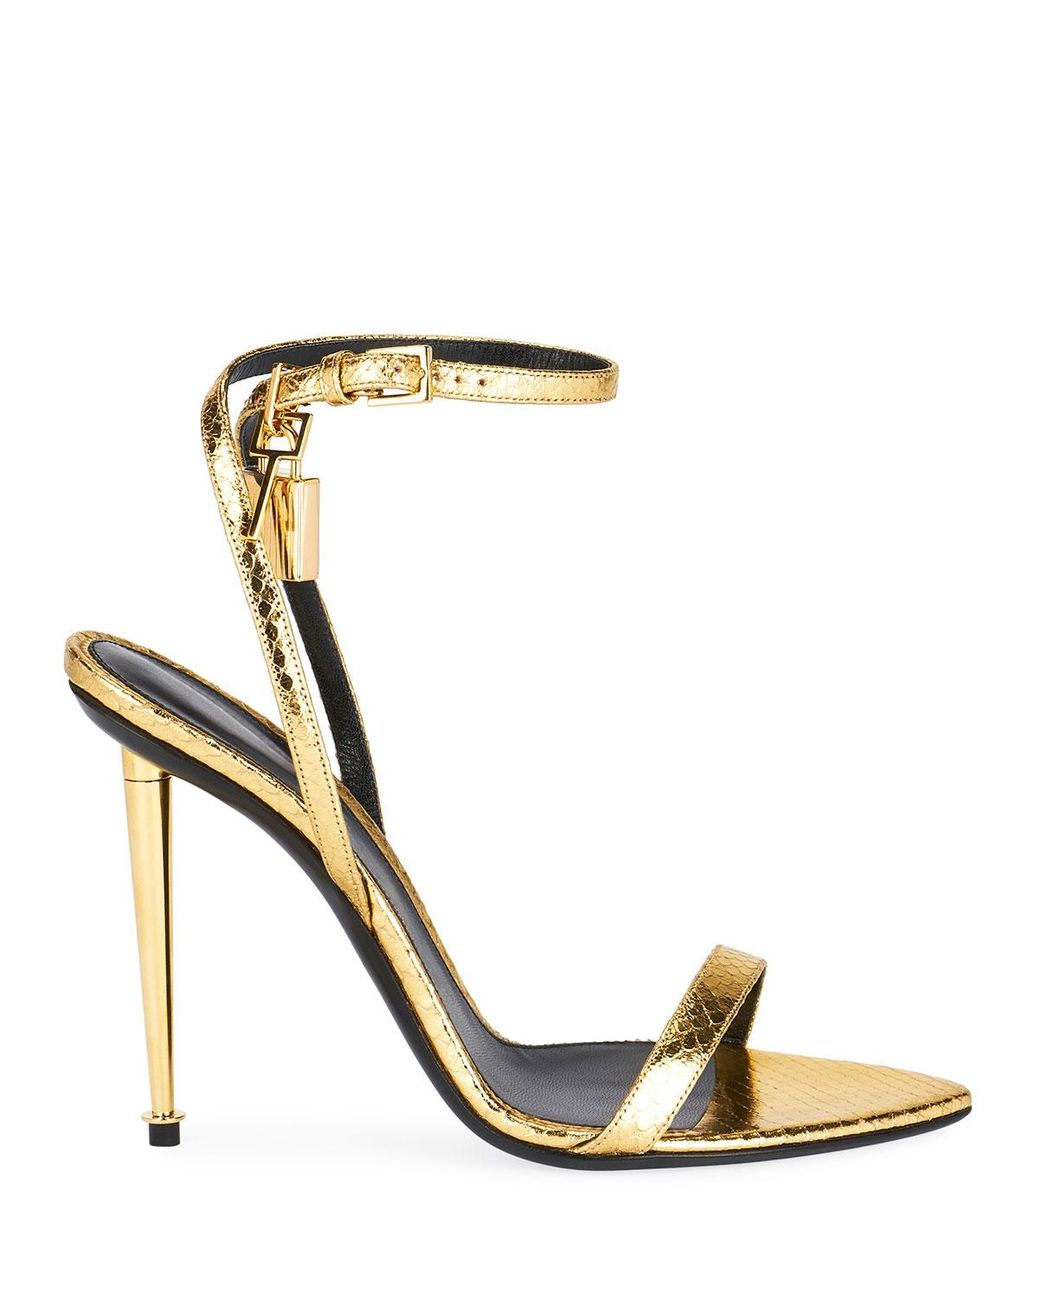 TOM FORD CHROMED Gold leather strappy high heel ankle strap